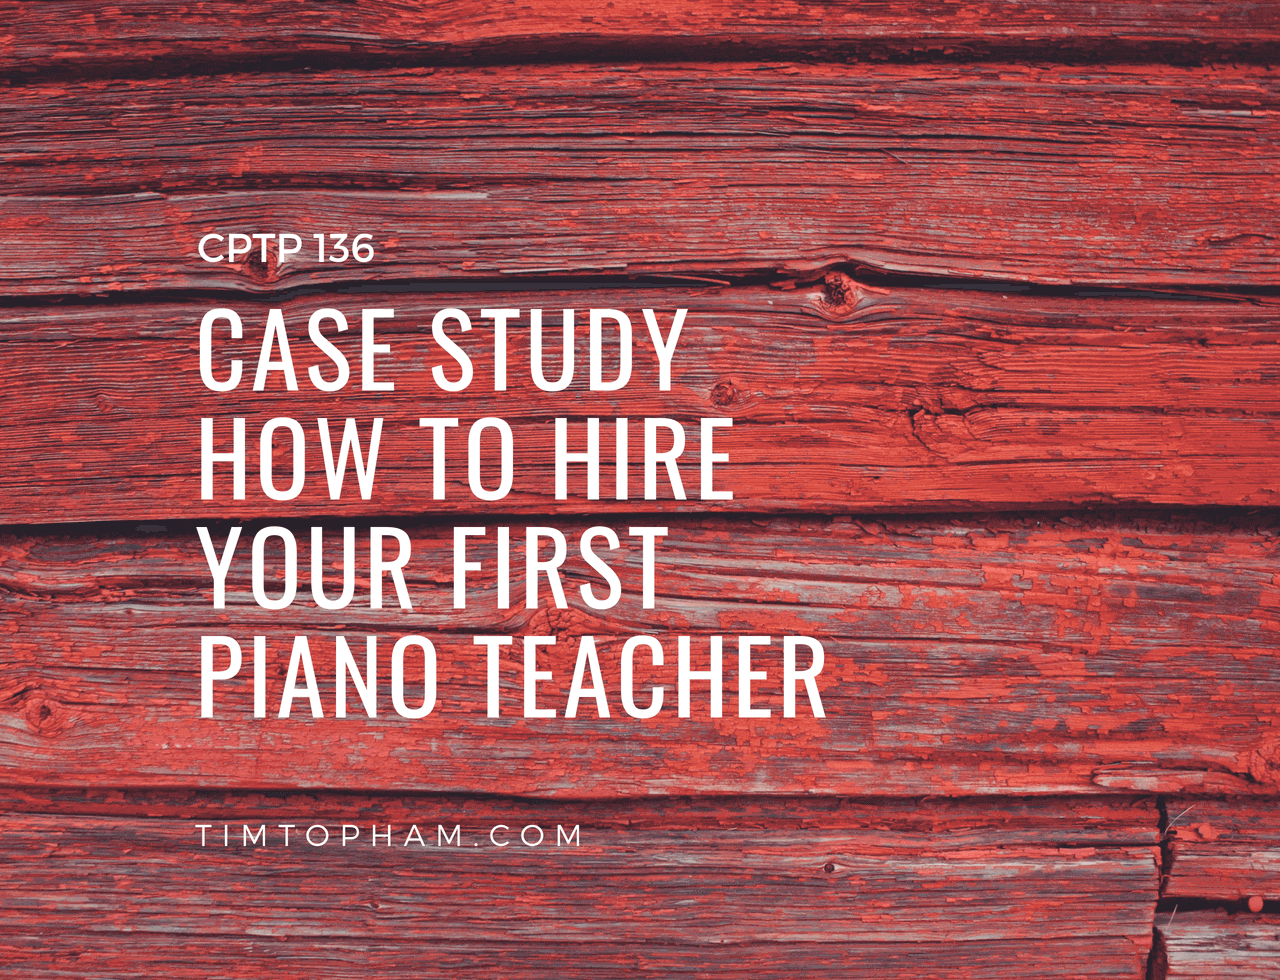 CPTP136_-Case-Study-How-to-hire-your-first-piano-teacher